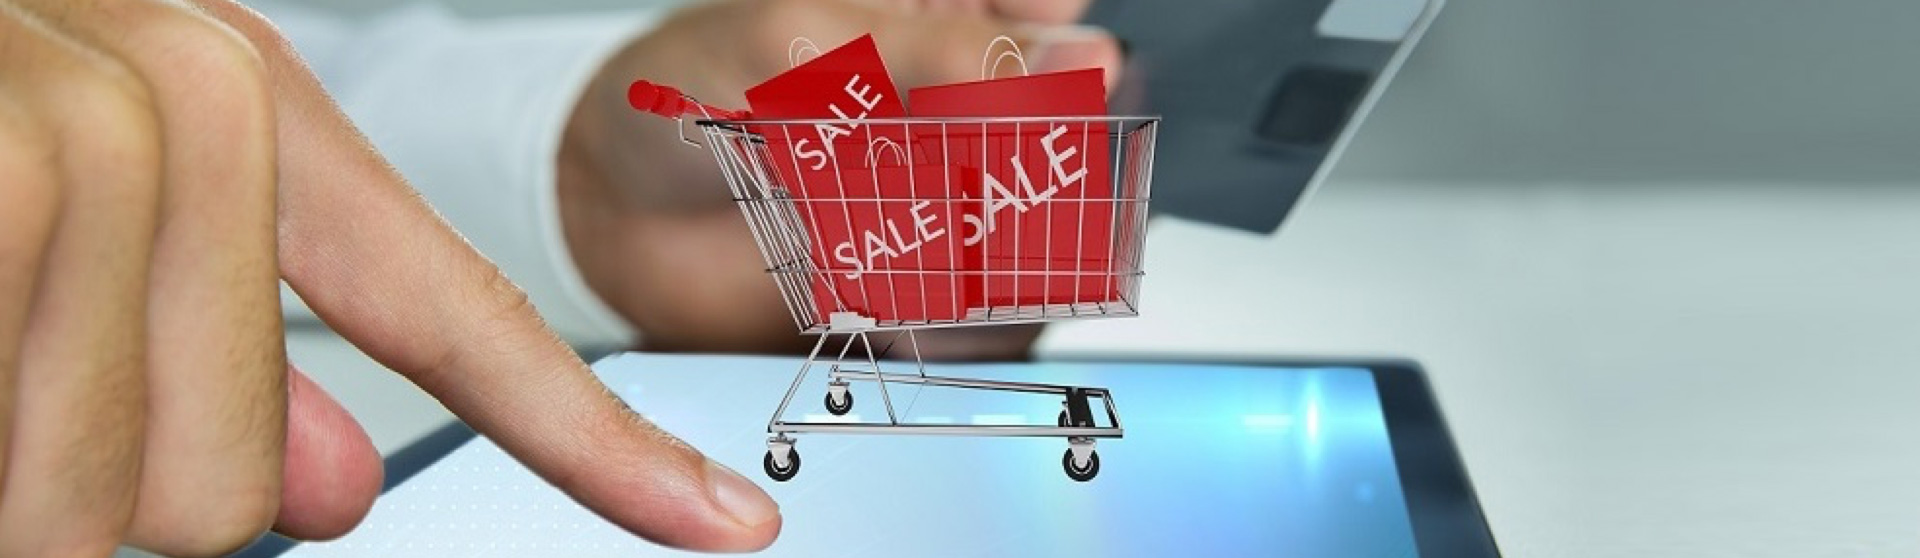 How to attract male online buyers in China